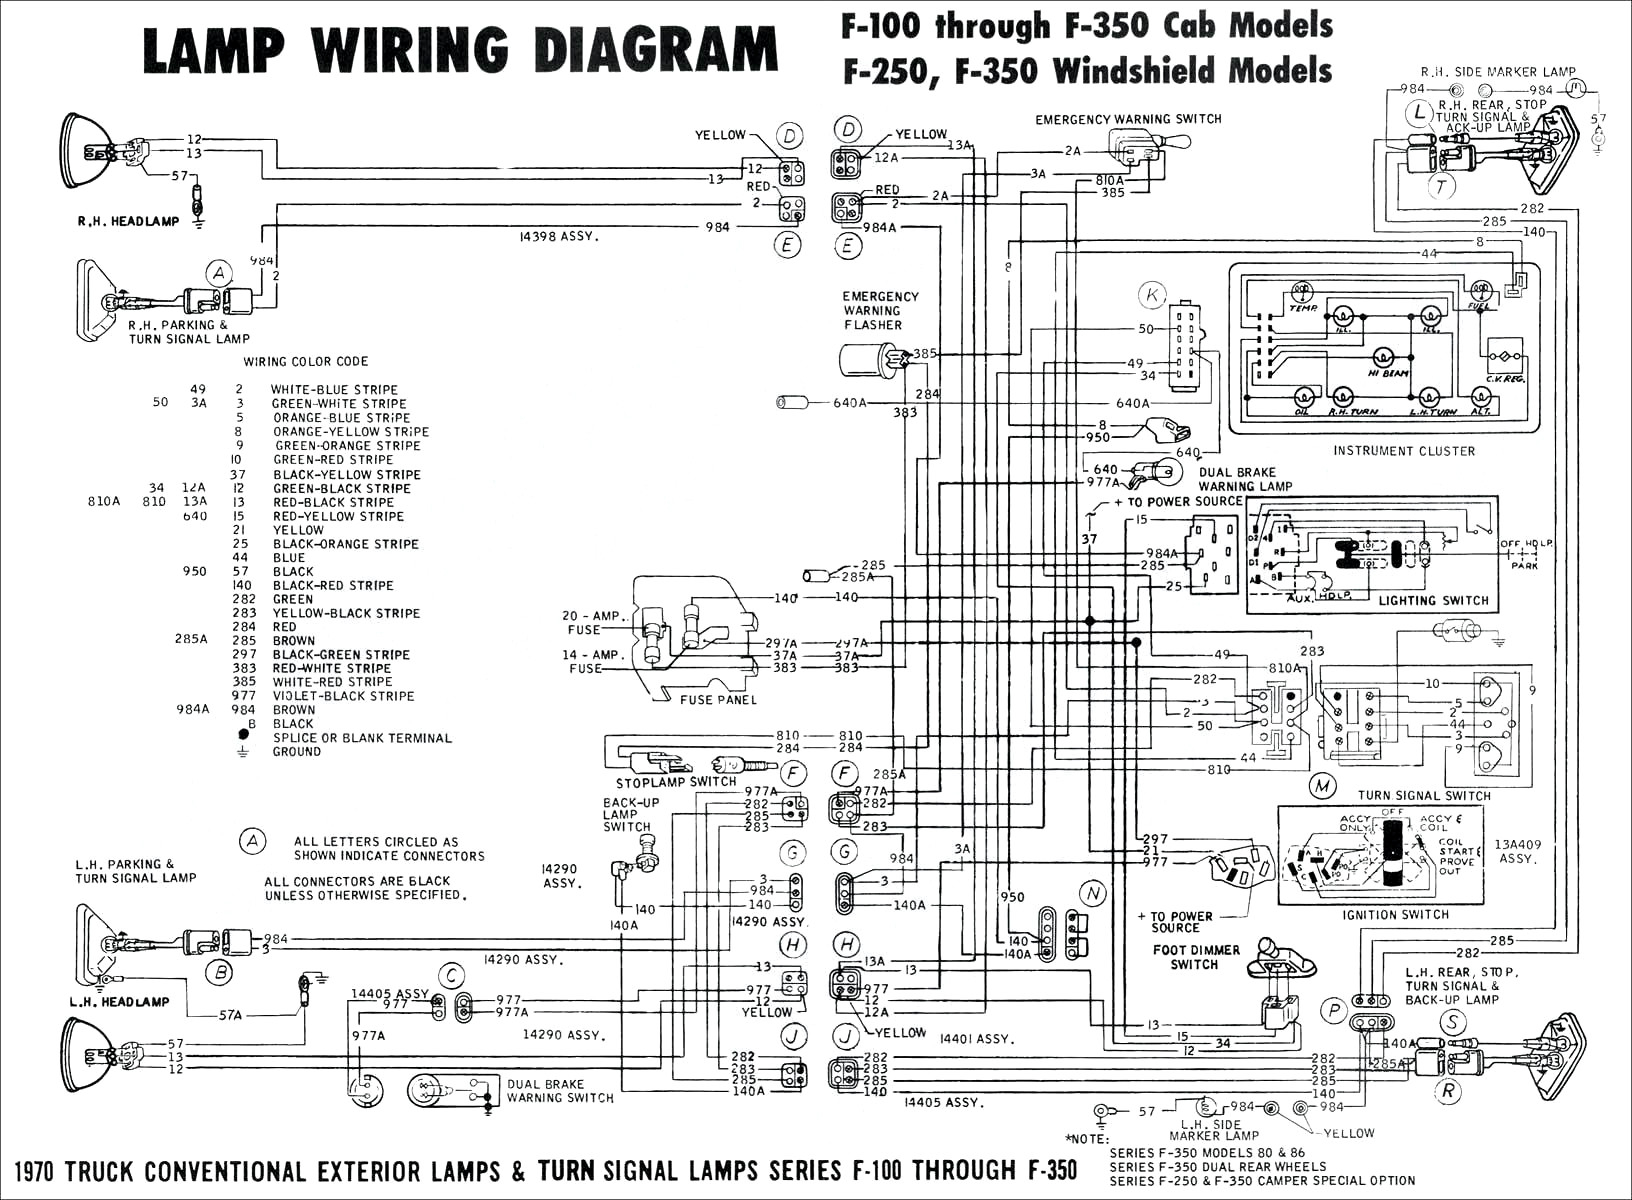 tork time clock wiring diagram Collection-Tork 2001 Wiring Diagram 2001 Fuse Diagram 2001 Parts Diagram 12-h